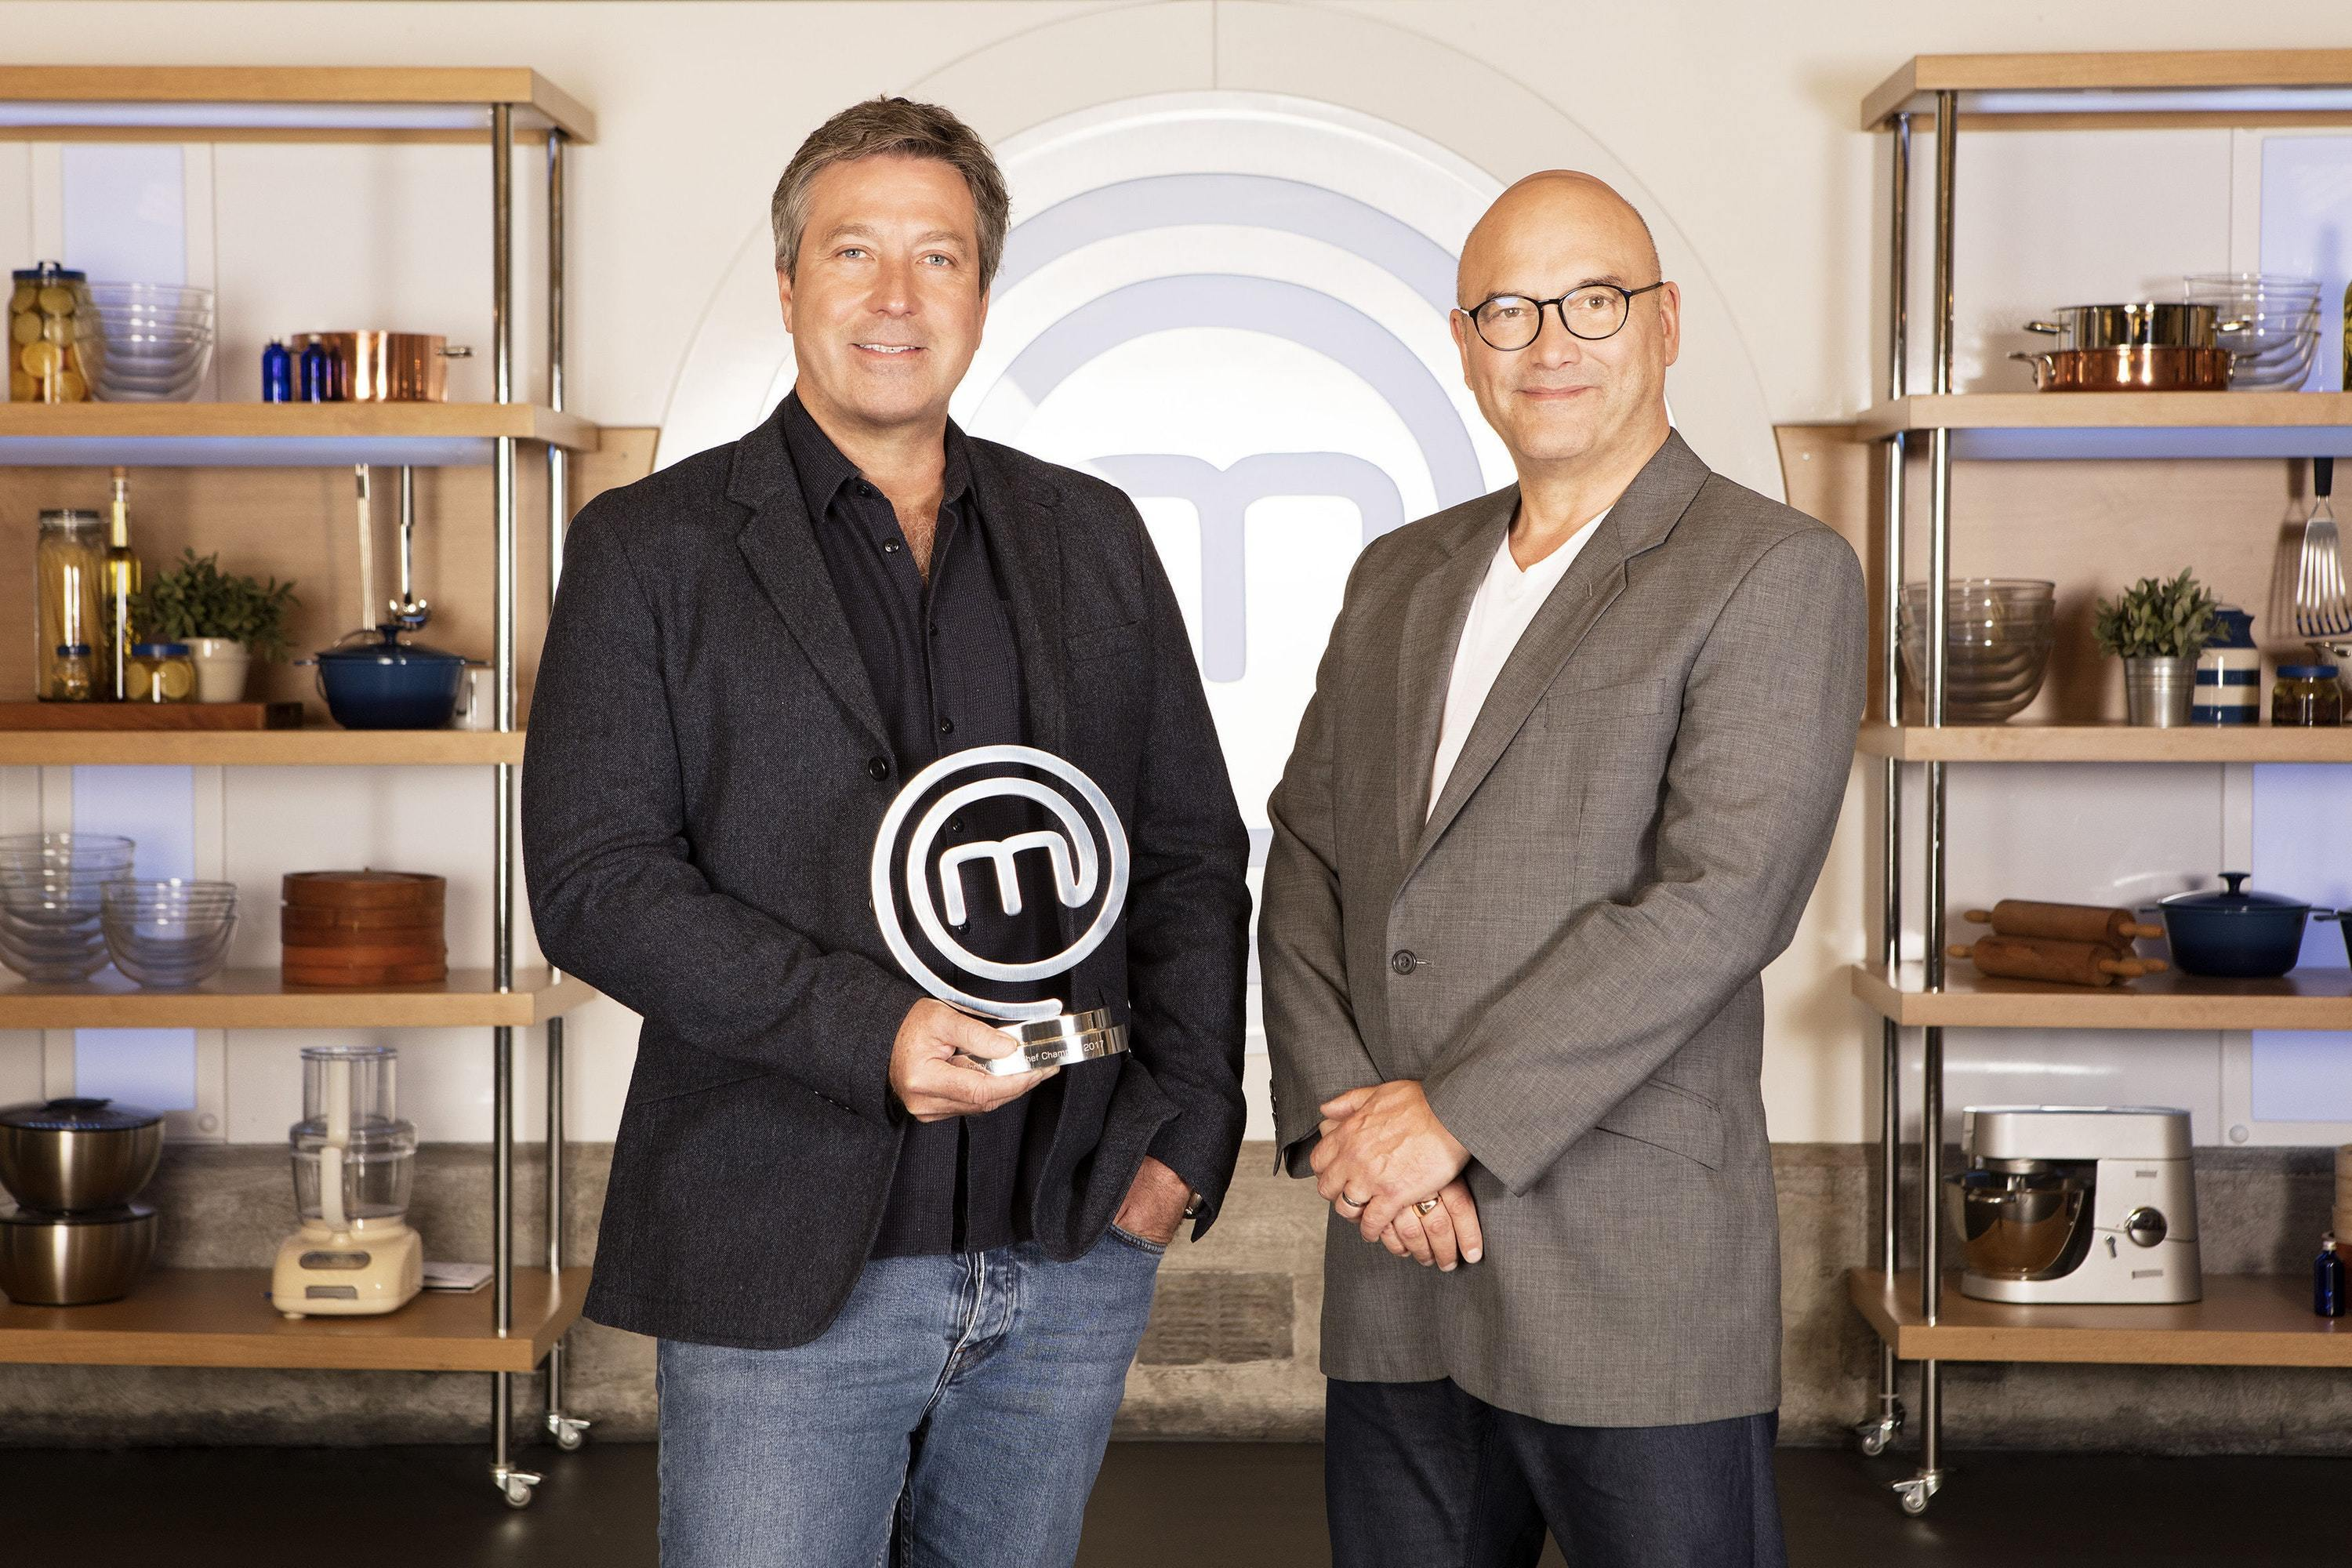 MasterChef's Gregg Wallace: I wouldn't judge Bake Off – it's an easier job (BBC)